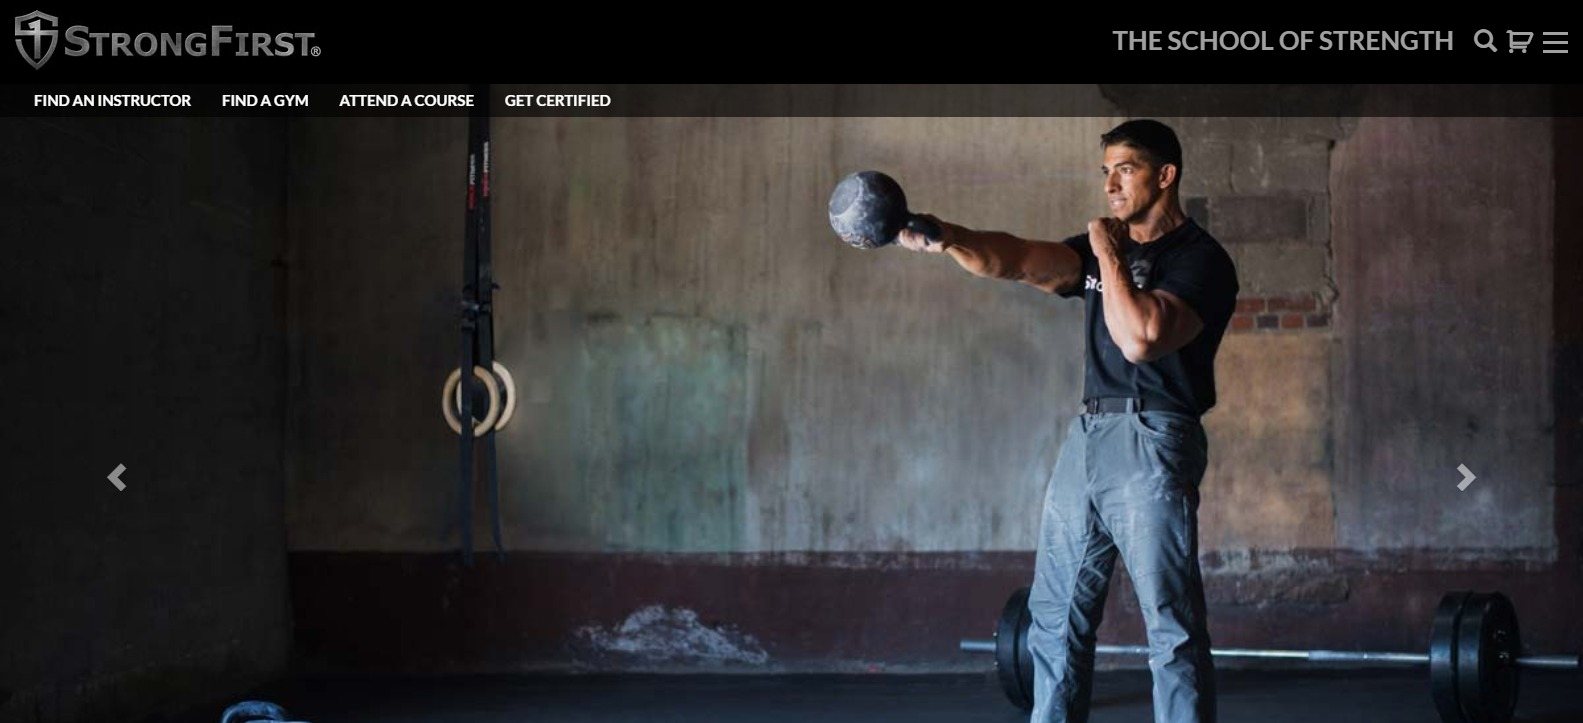 StrongFirst online fitness